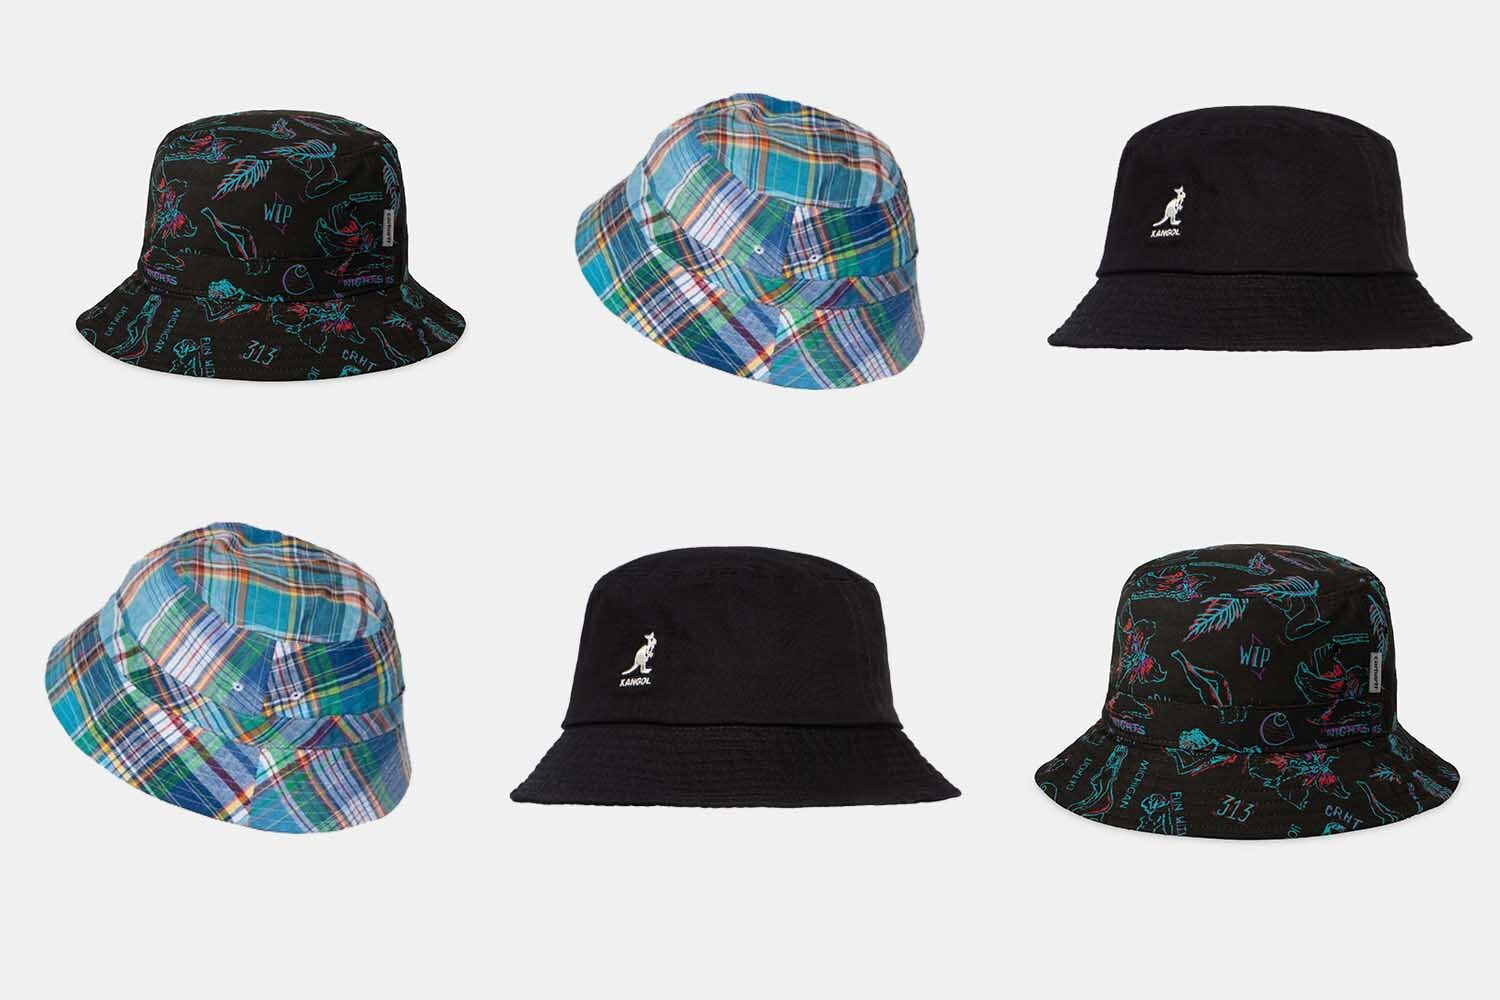 How To Pull Off A Bucket Hat Without Looking Dumb Insidehook